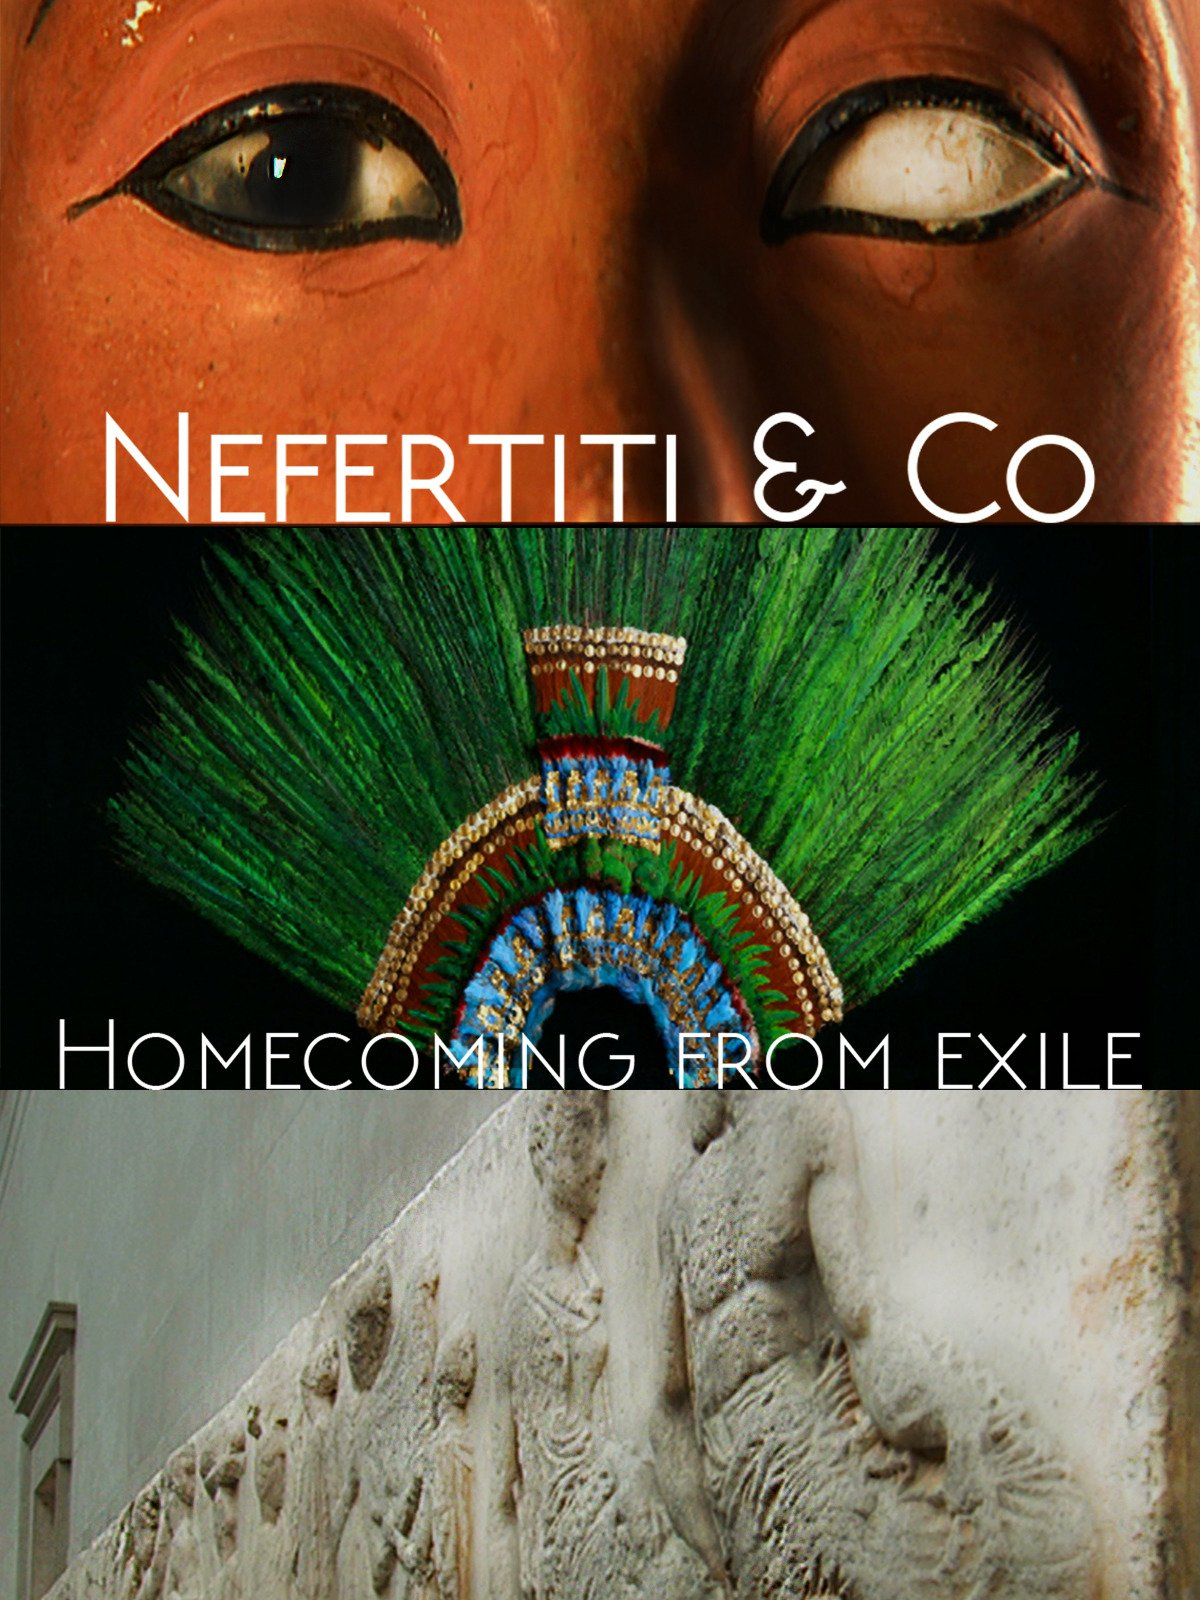 Amazon.com: Watch Nefertiti and Co - Homecoming from Exile ...